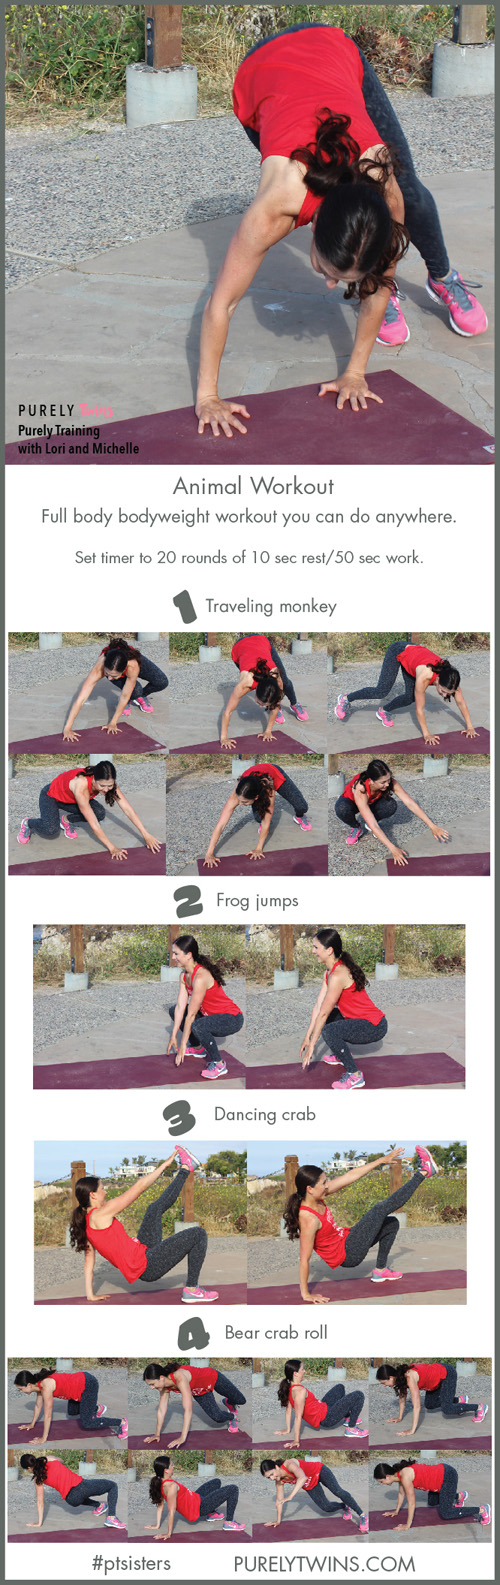 Are you feeling wild? It's time to sculpt your body in this animal inspired workout. No equipment is needed and it will only take you 20 minutes. Share this with your friends and do it with me.